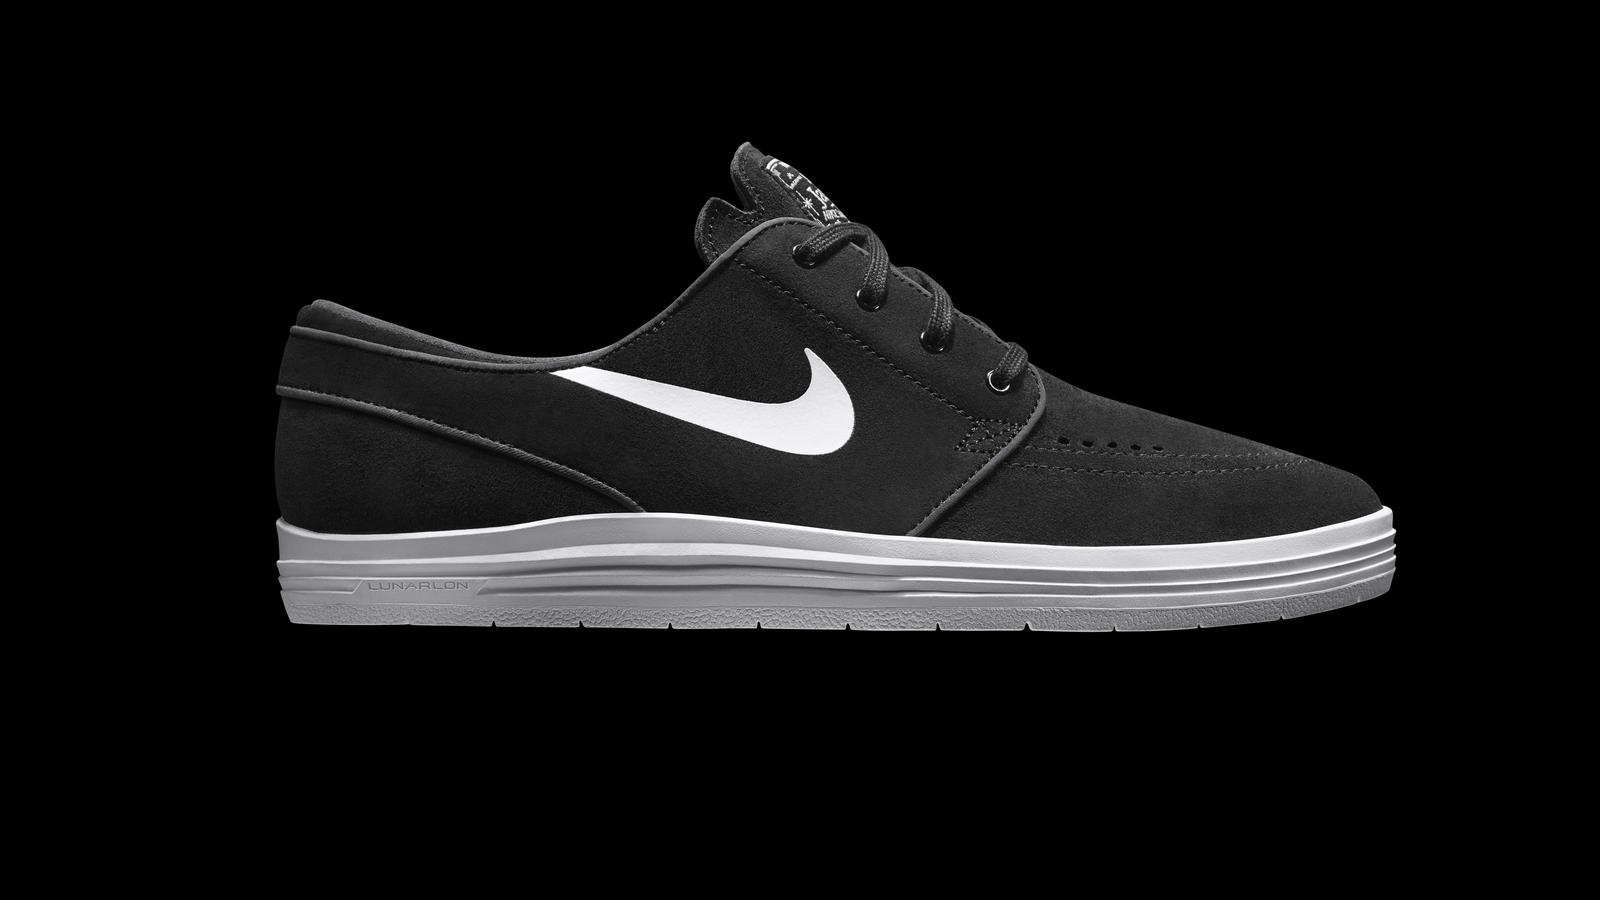 Effortless: The Nike SB Lunar Stefan Janoski Nike News